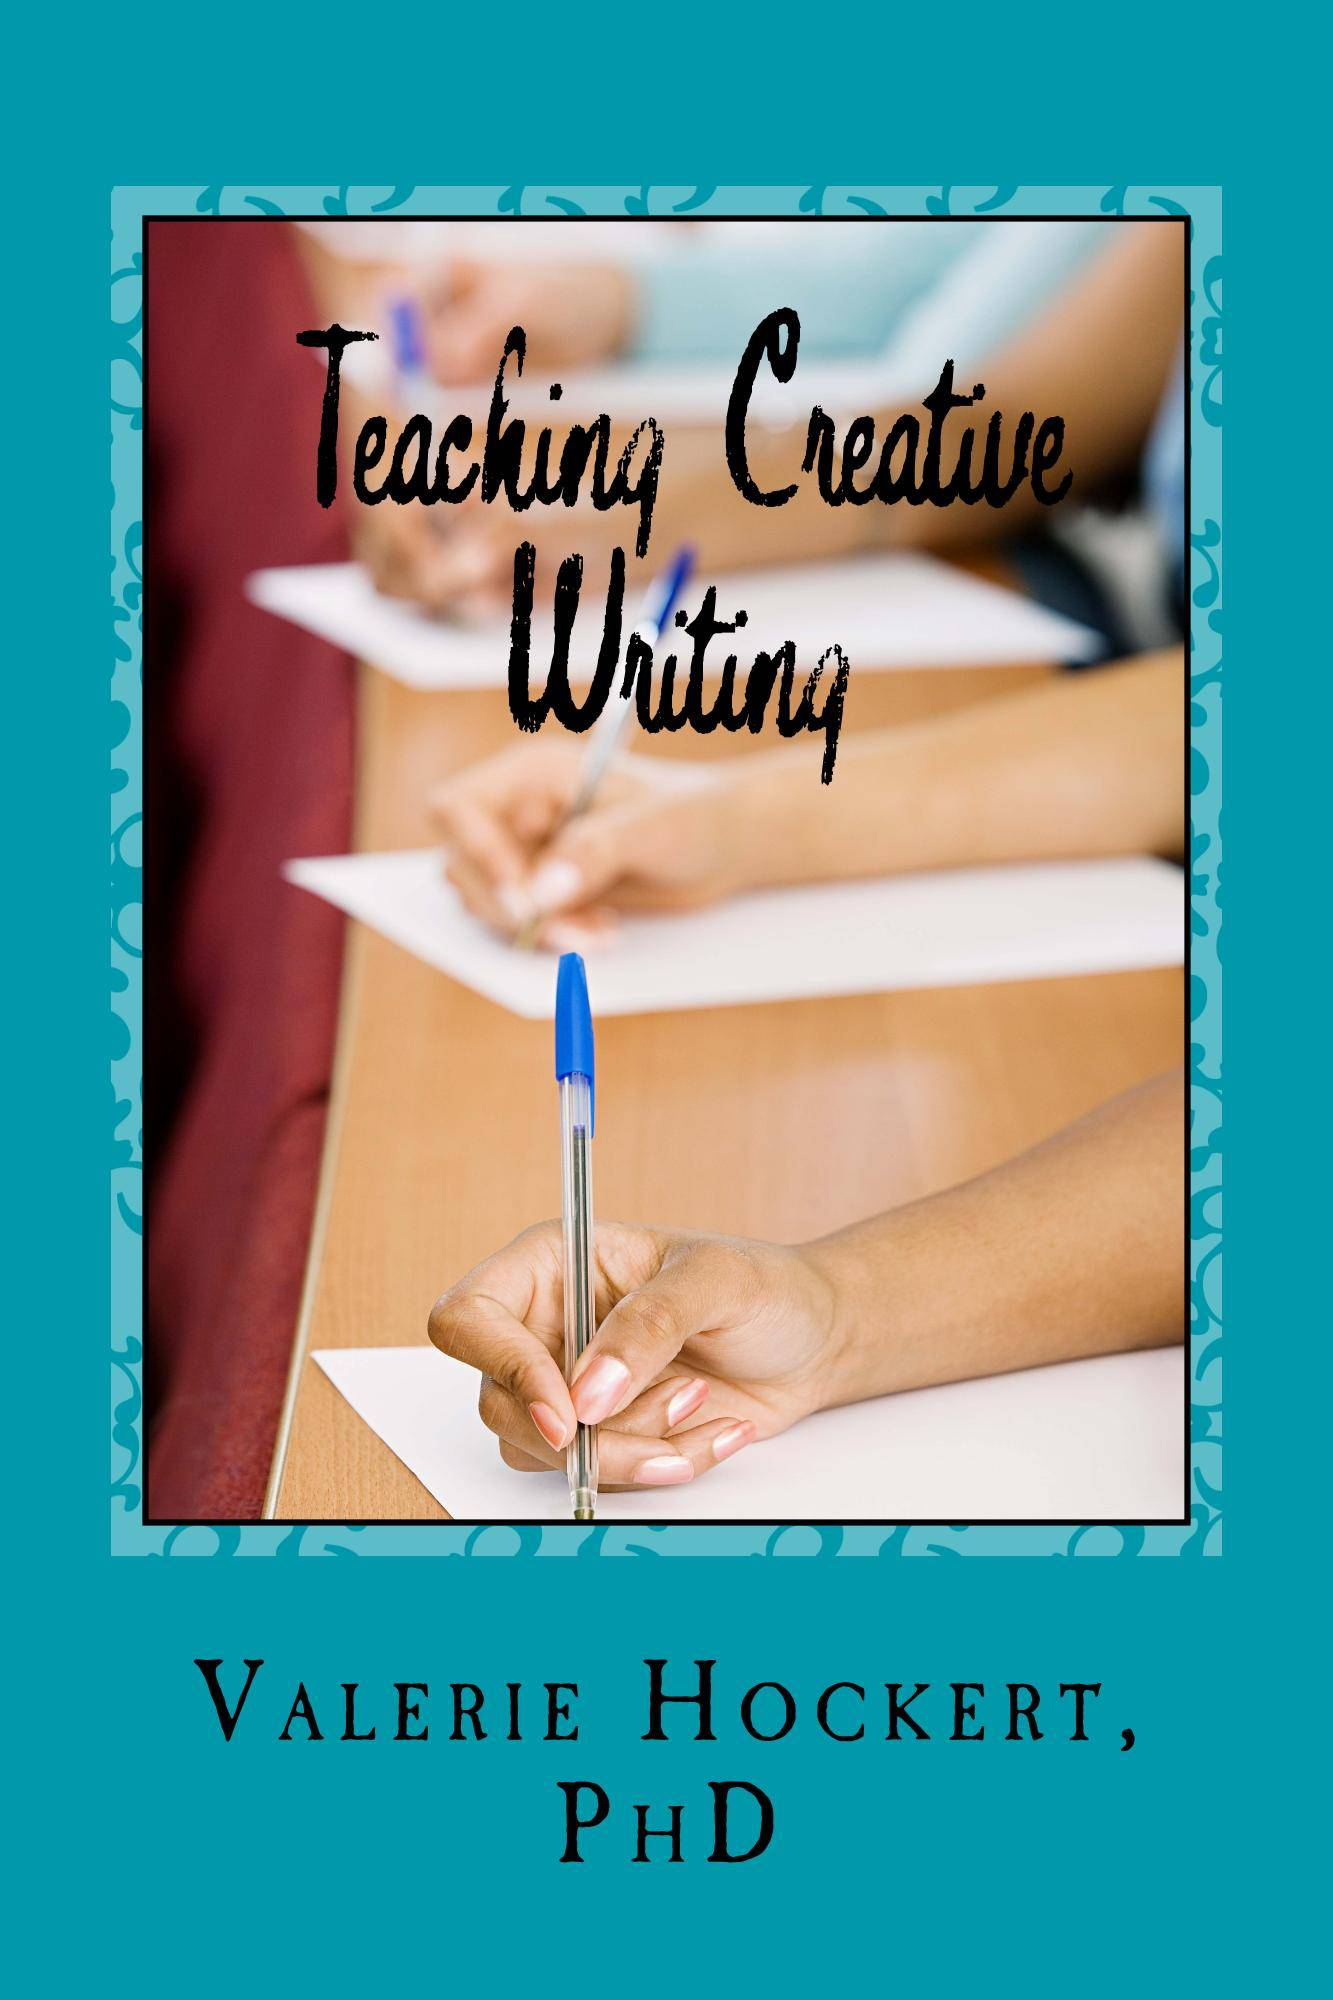 what is a creative writing class Turn your passion for words into your profession with an online creative writing degree from snhu, a nonprofit, accredited university.